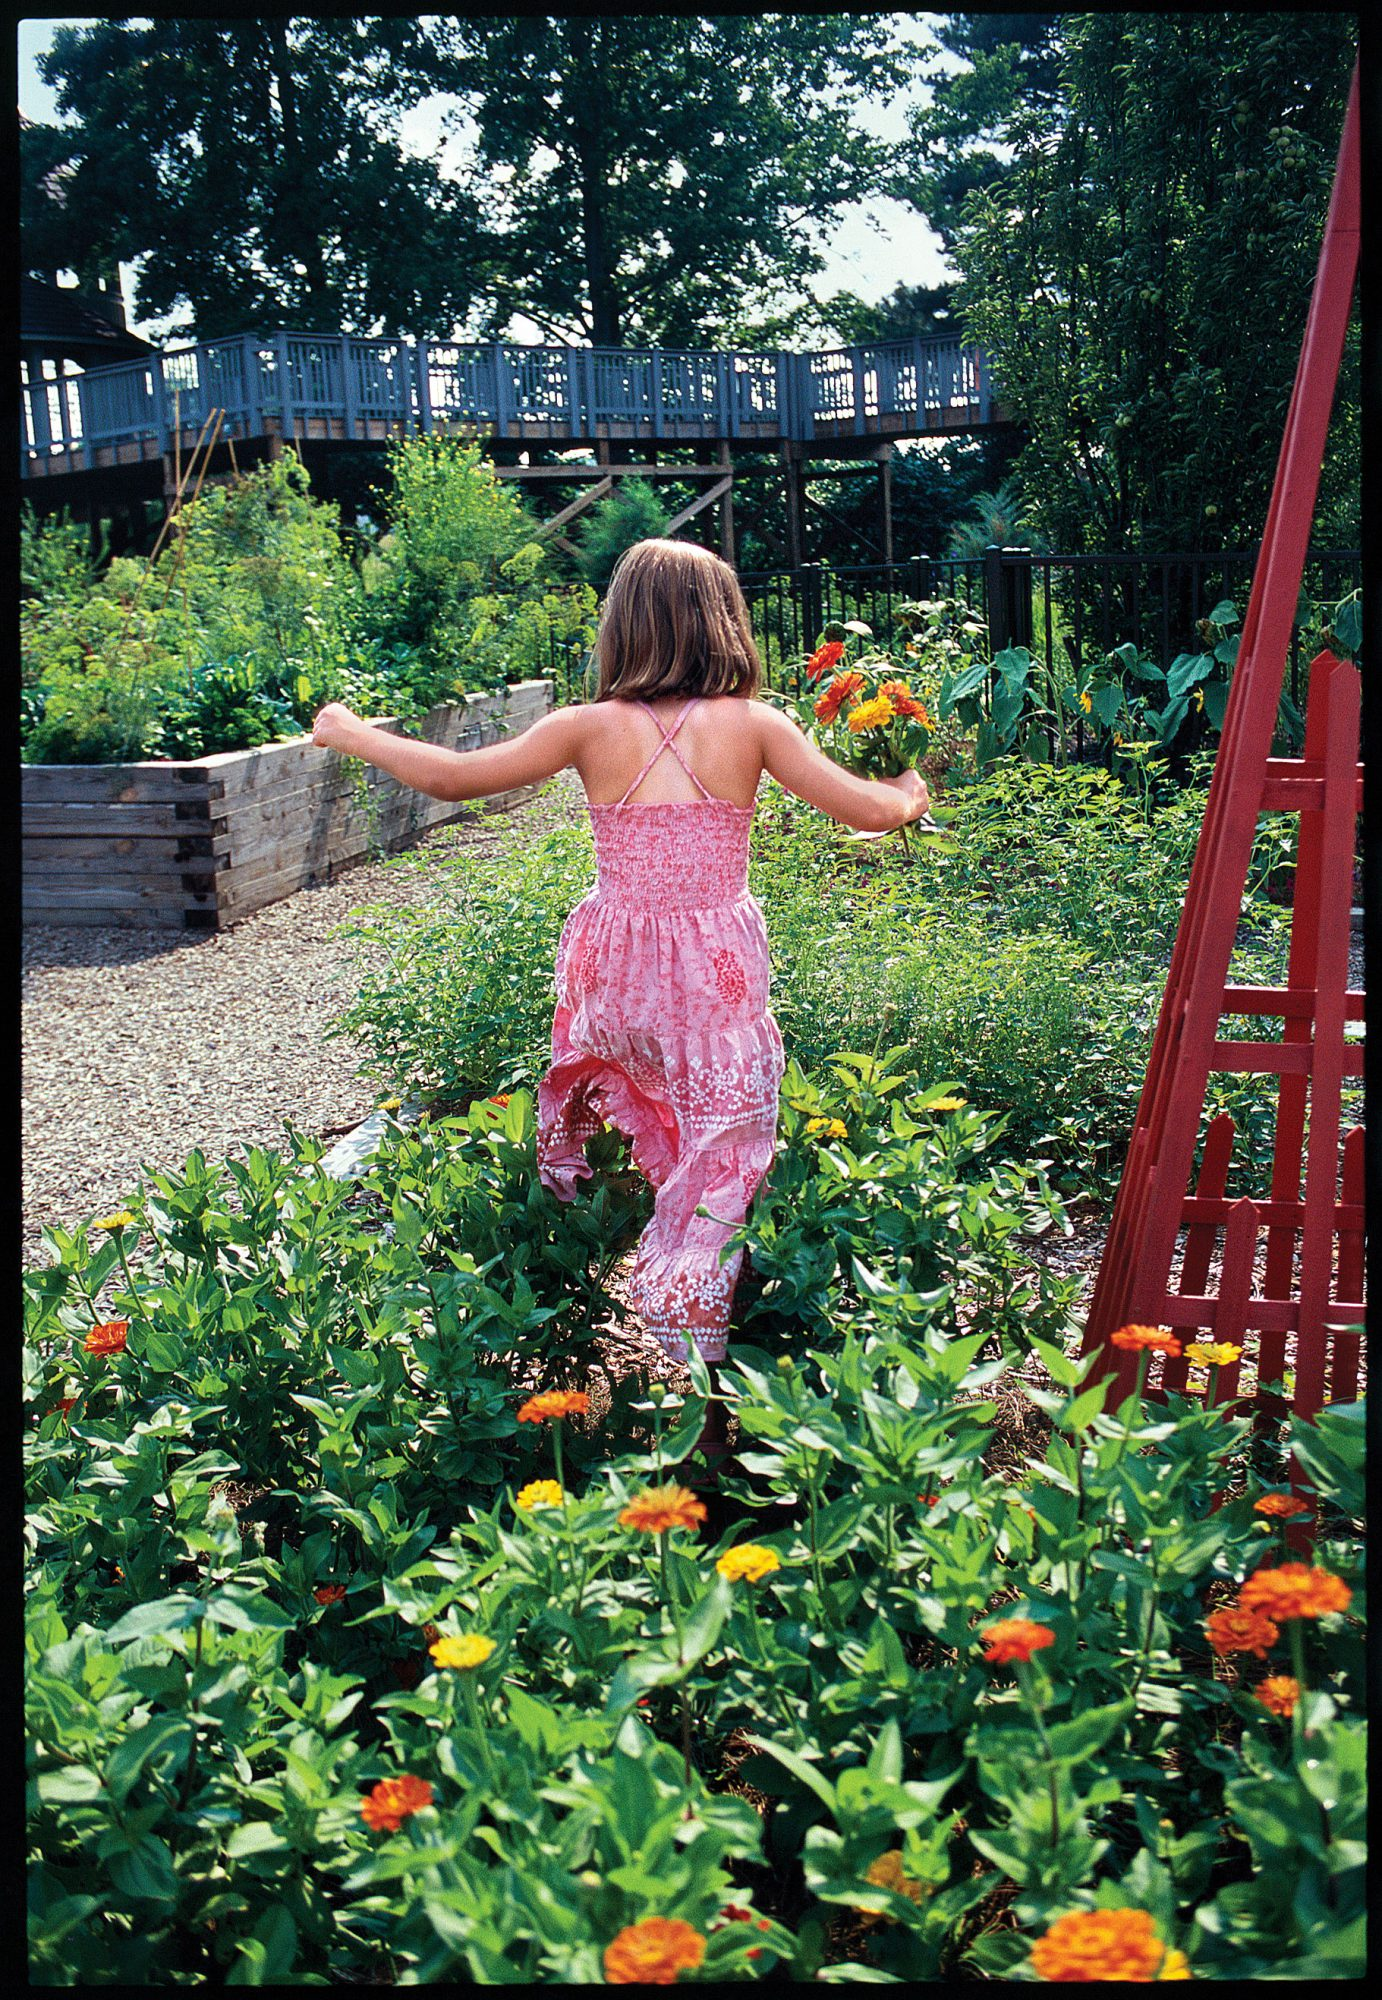 Plant and Learn at Children's Gardening Programs